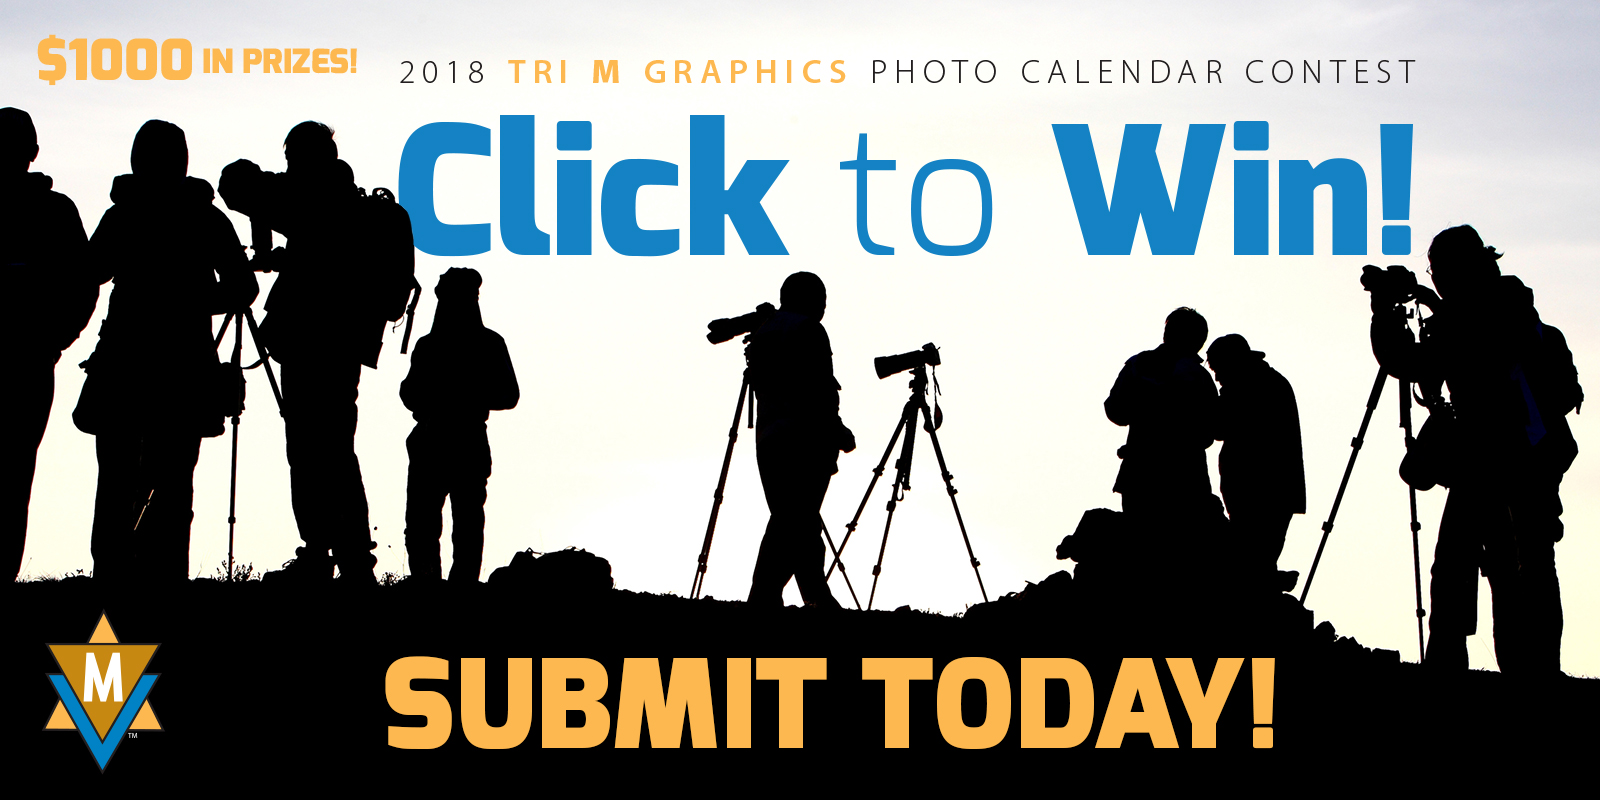 Tri M Graphics - Photo Calendar Contest UPLOAD - Owatonna MN